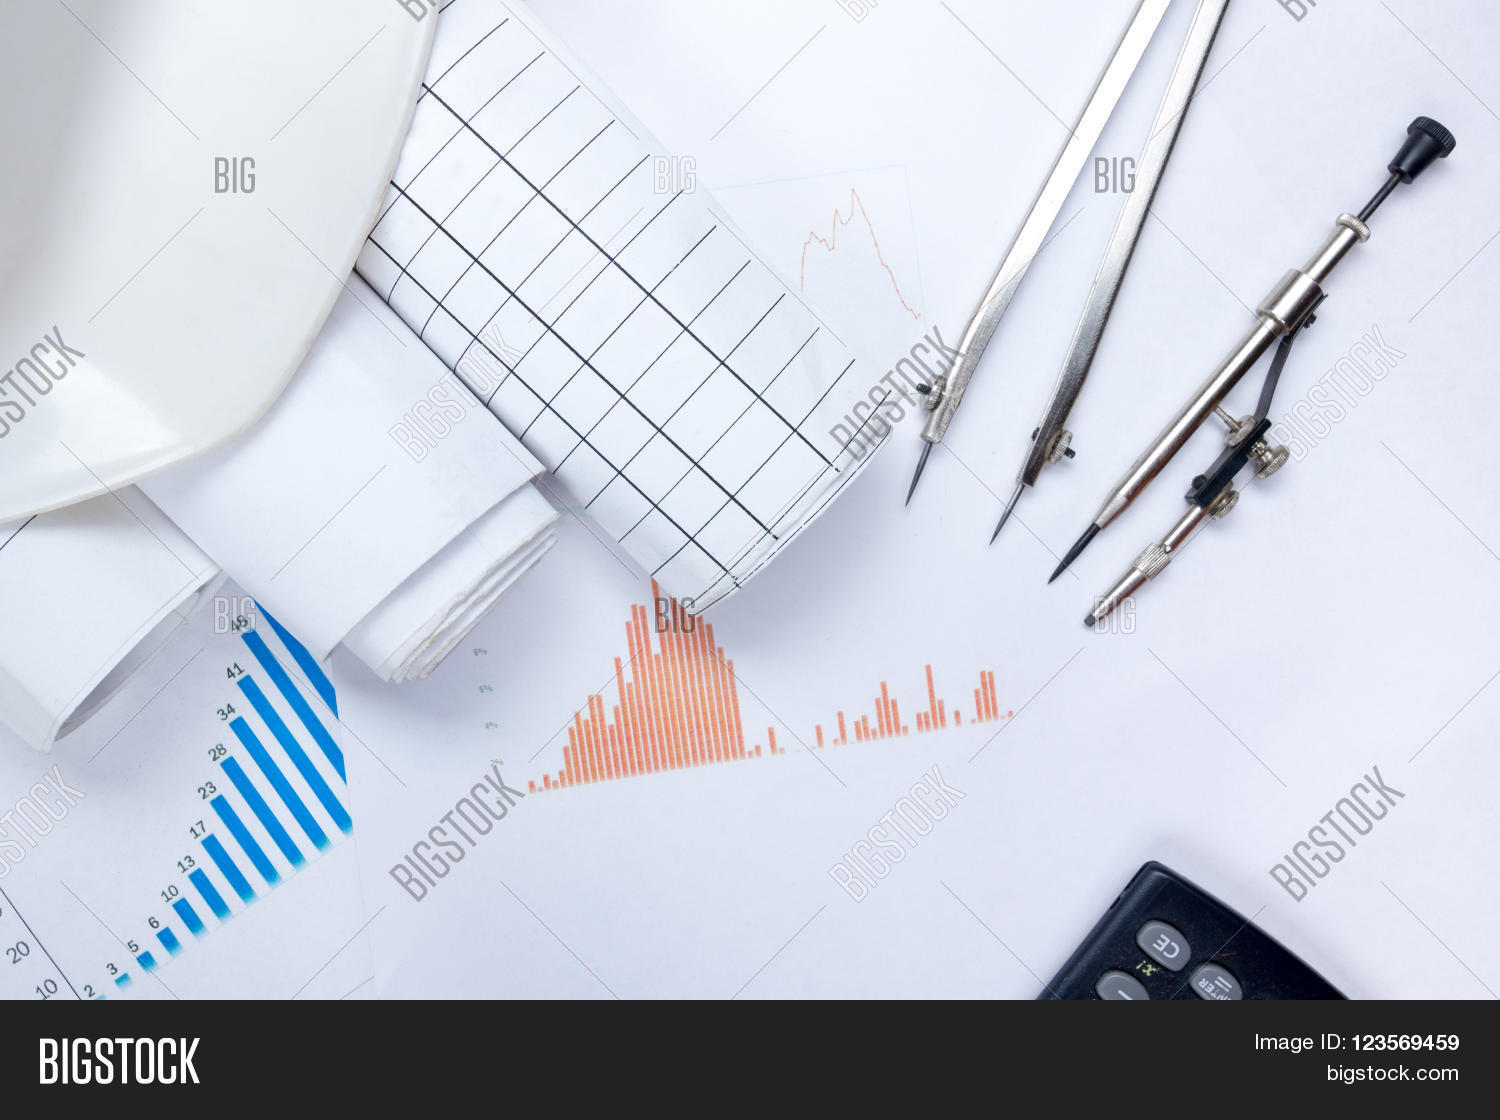 Architectural blueprints blueprint image photo bigstock architectural blueprints blueprint rolls compass divider calculator white safety on graph paper malvernweather Image collections